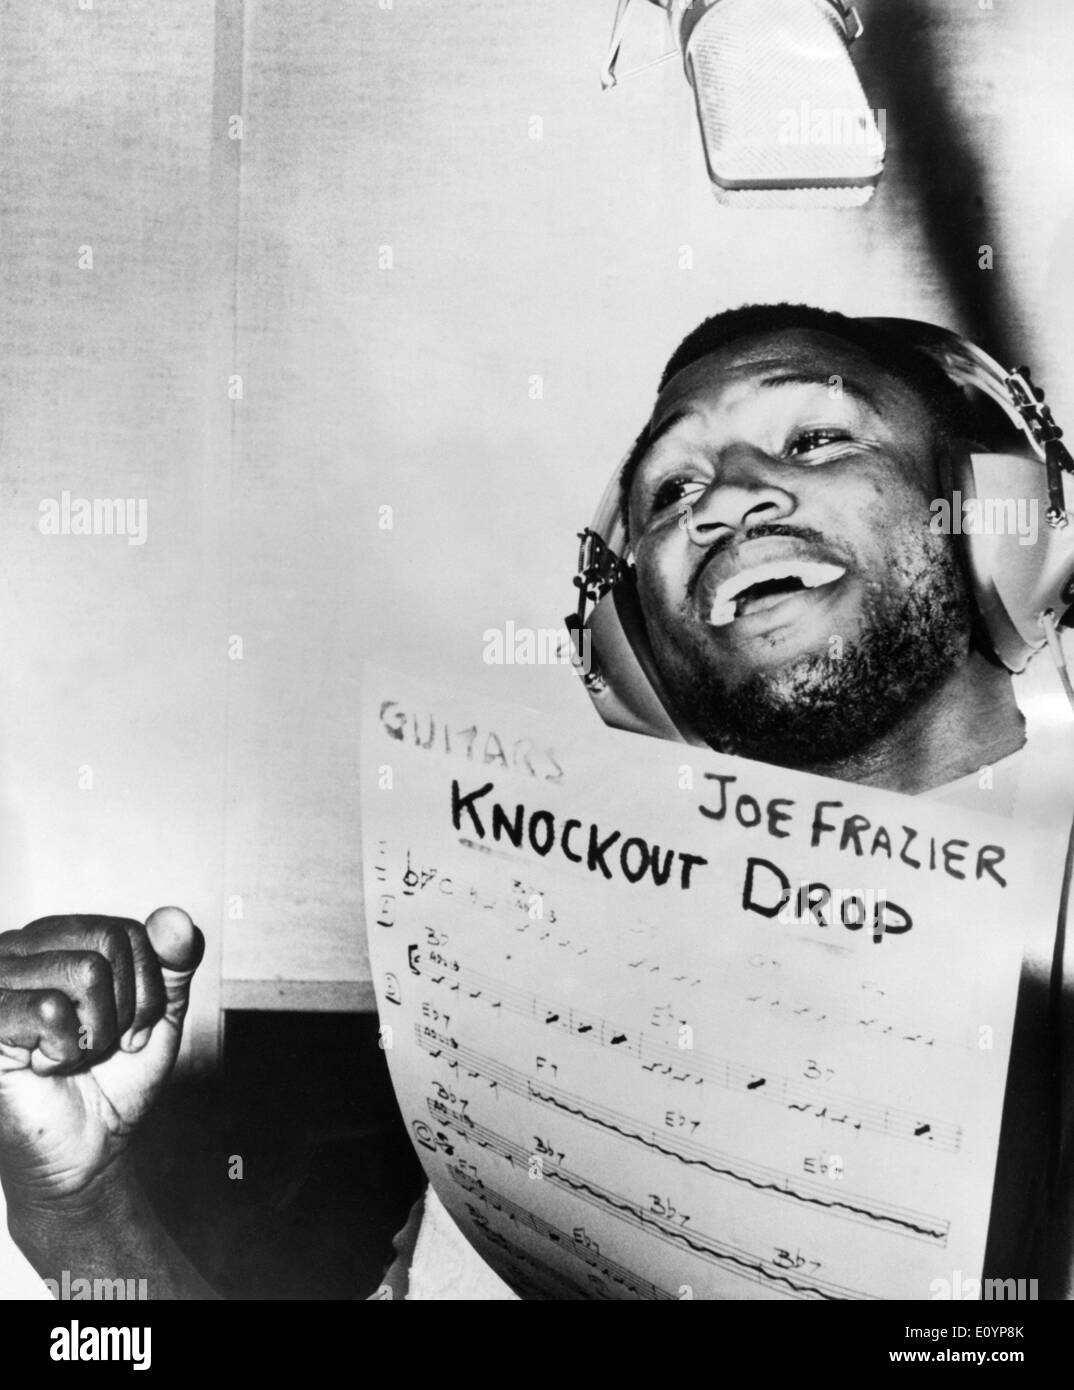 Boxer Joe Frazier sings at recording studio - Stock Image